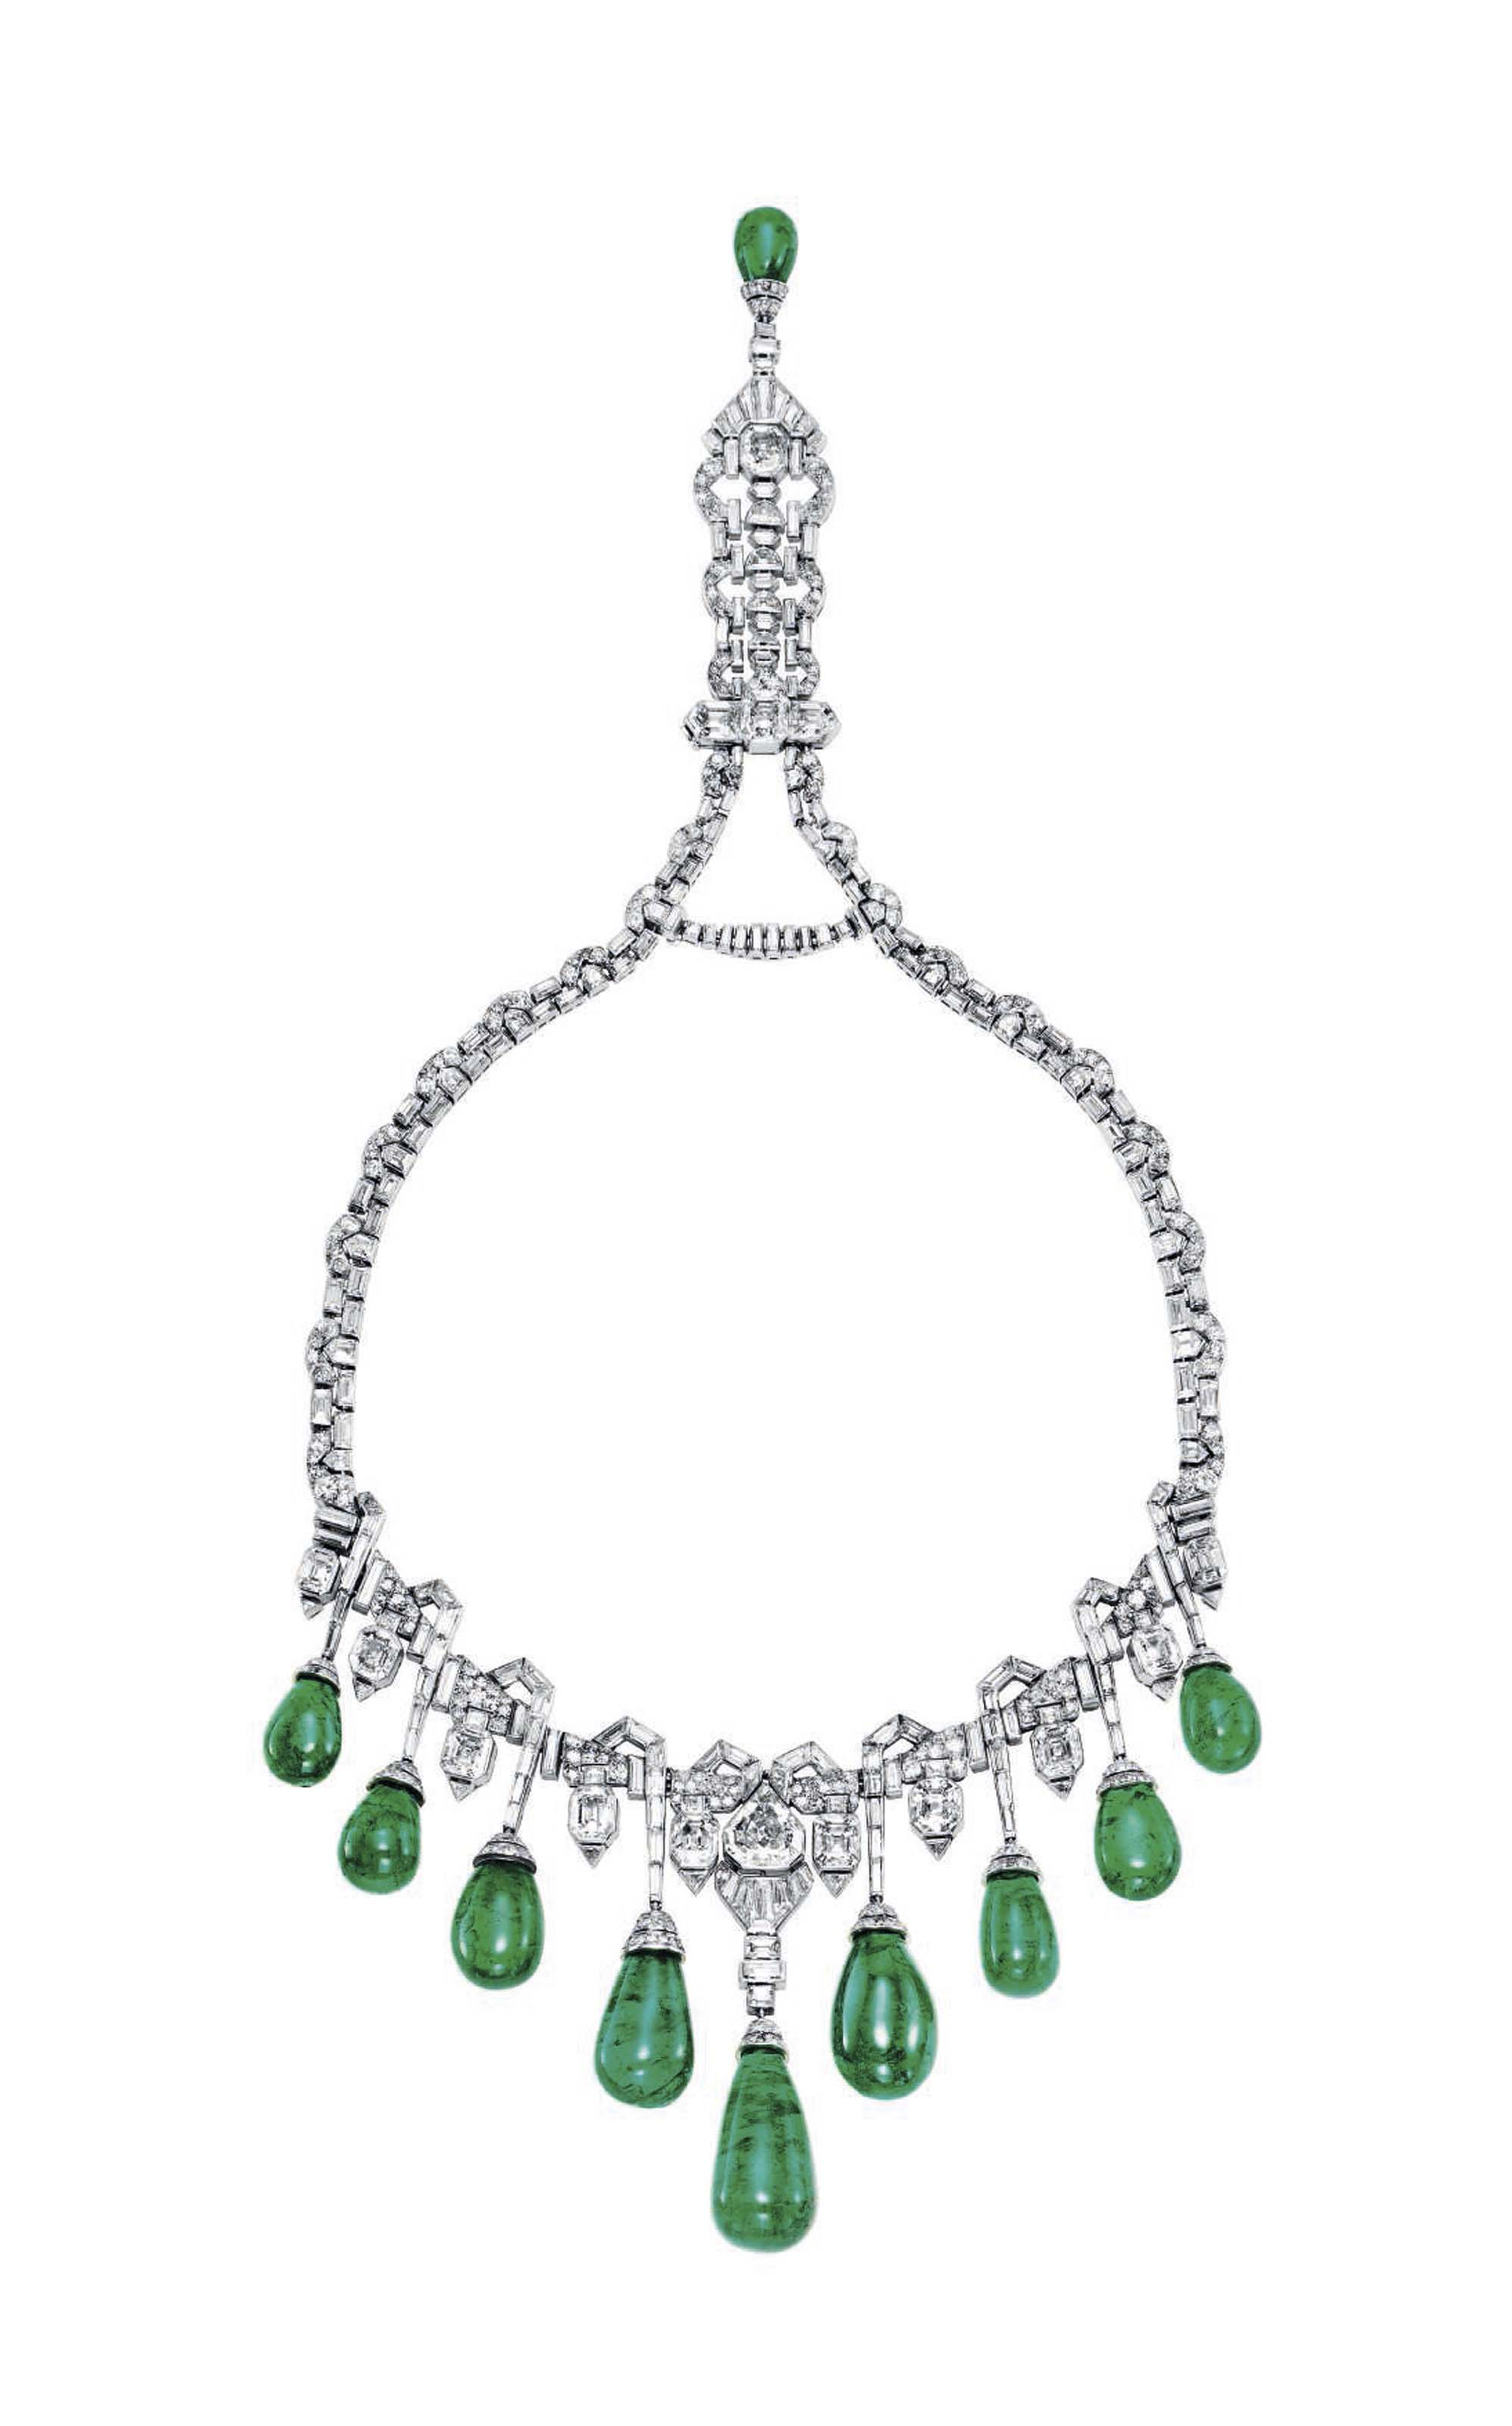 An Art Deco Emerald And Diamond Necklace By Van Cleef